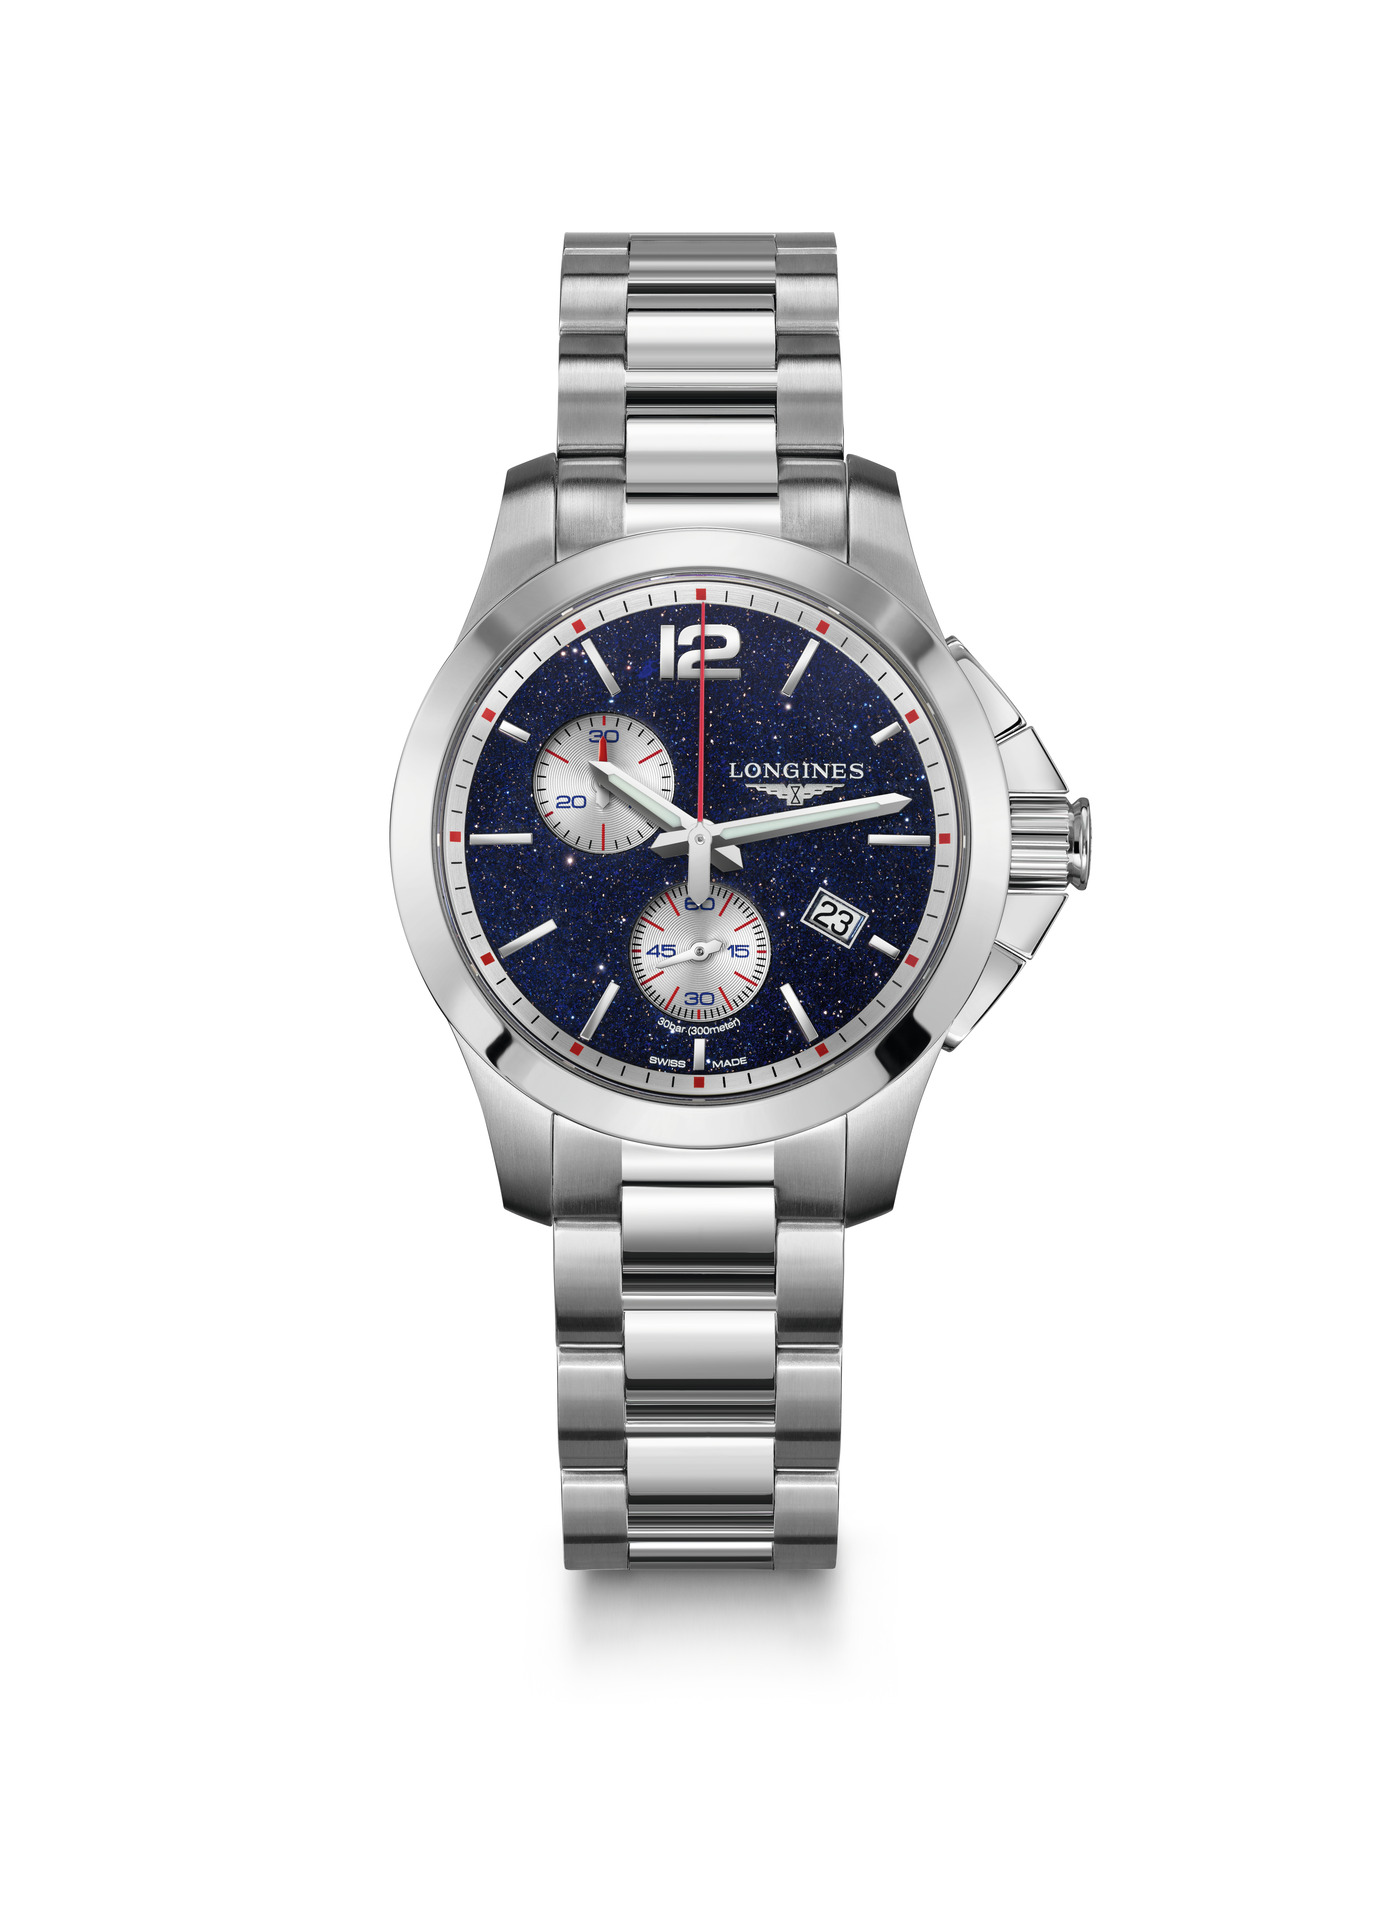 Longines Conquest Chronograph by Mikaela Shiffrin Watch 4